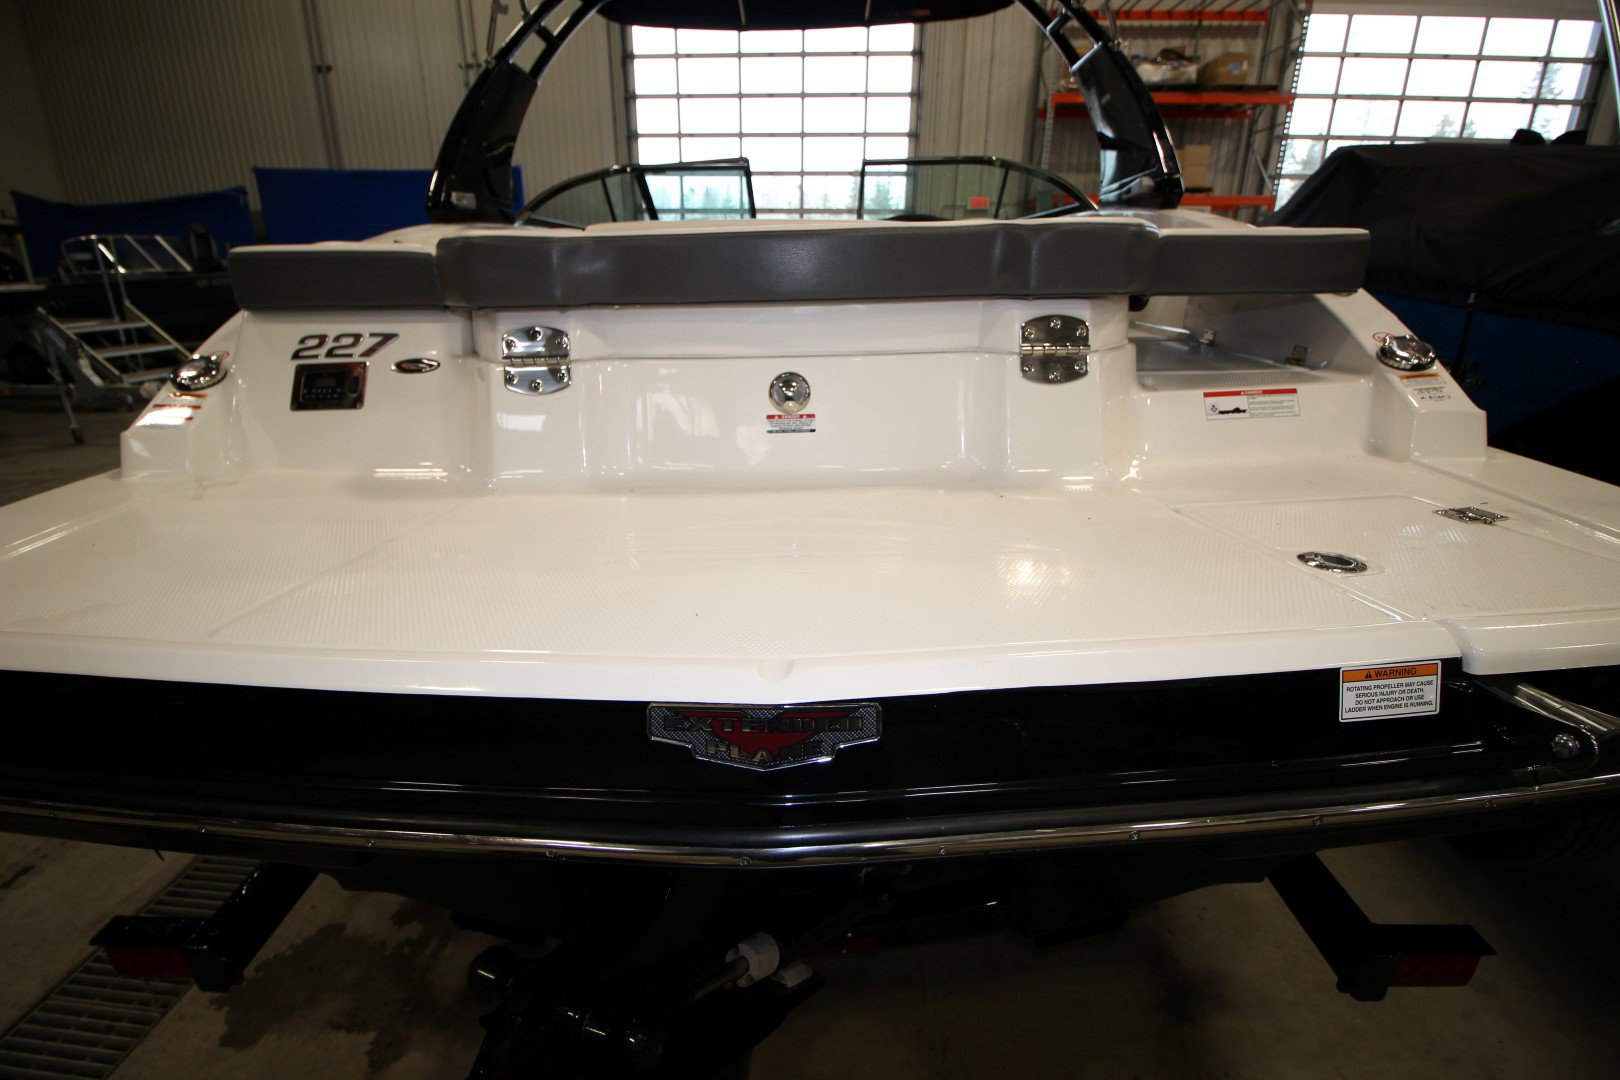 Chaparral 227 SSX - IMG_0149